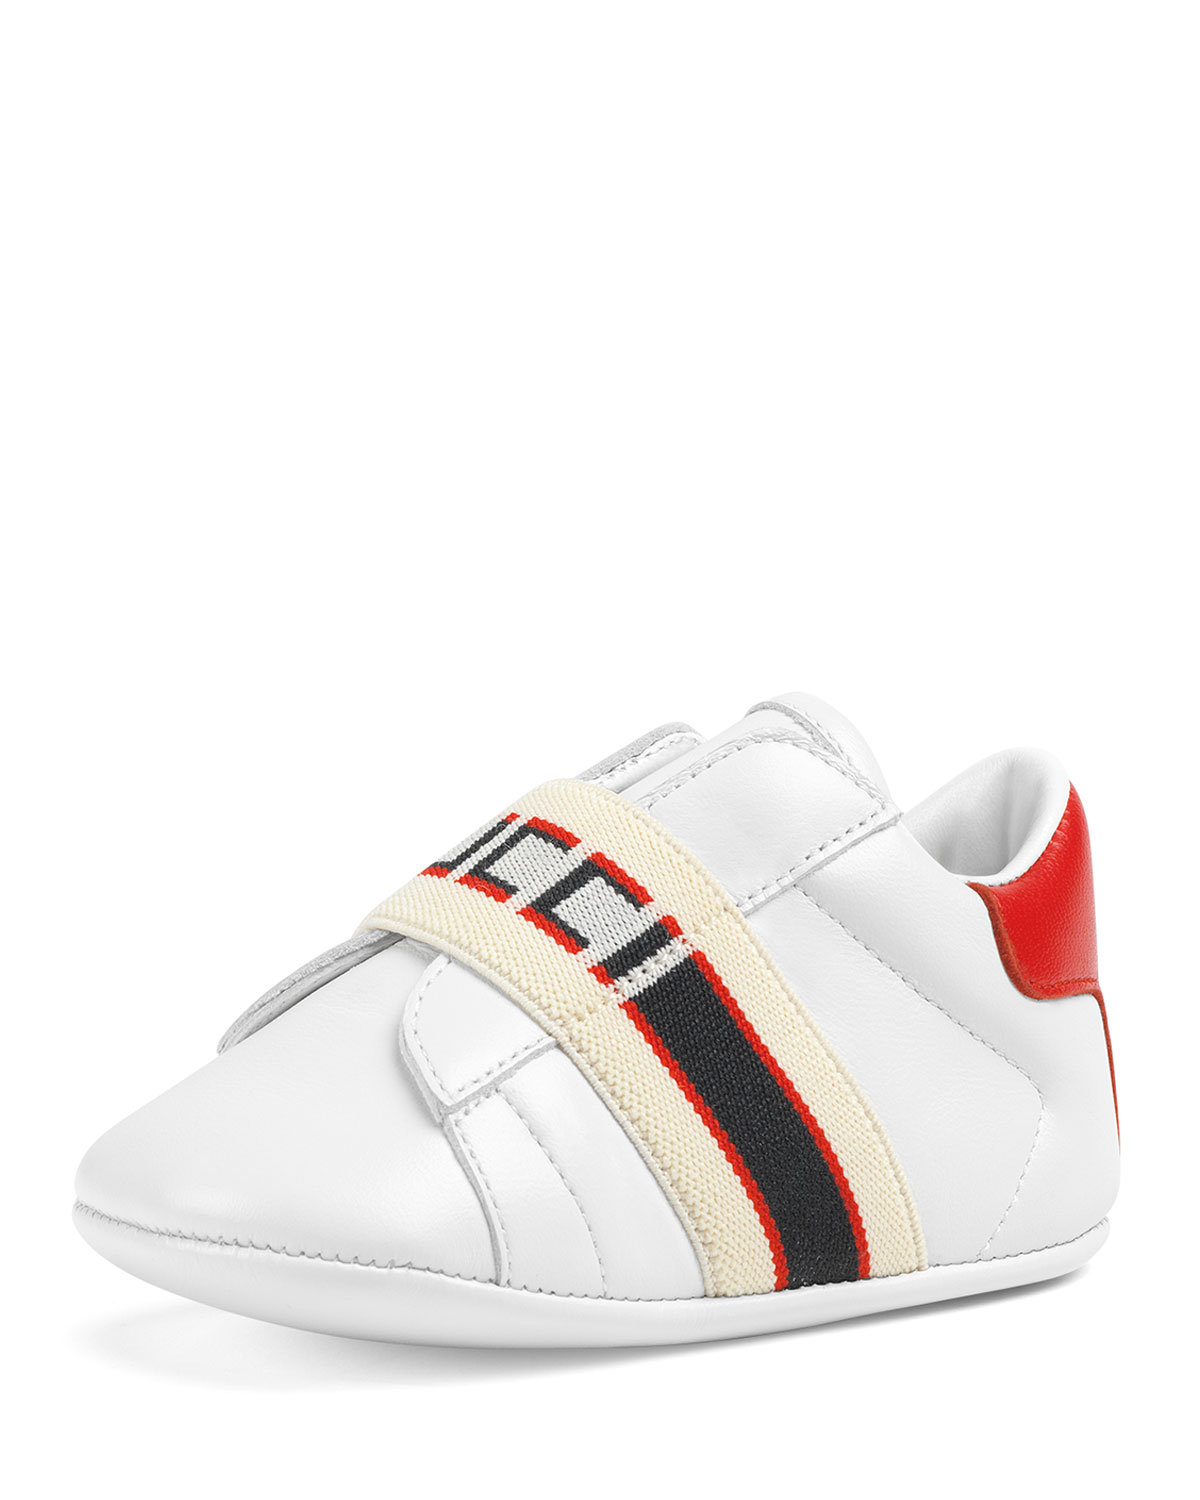 84970c77eabd8 Gucci New Ace Gucci Band Leather Sneakers